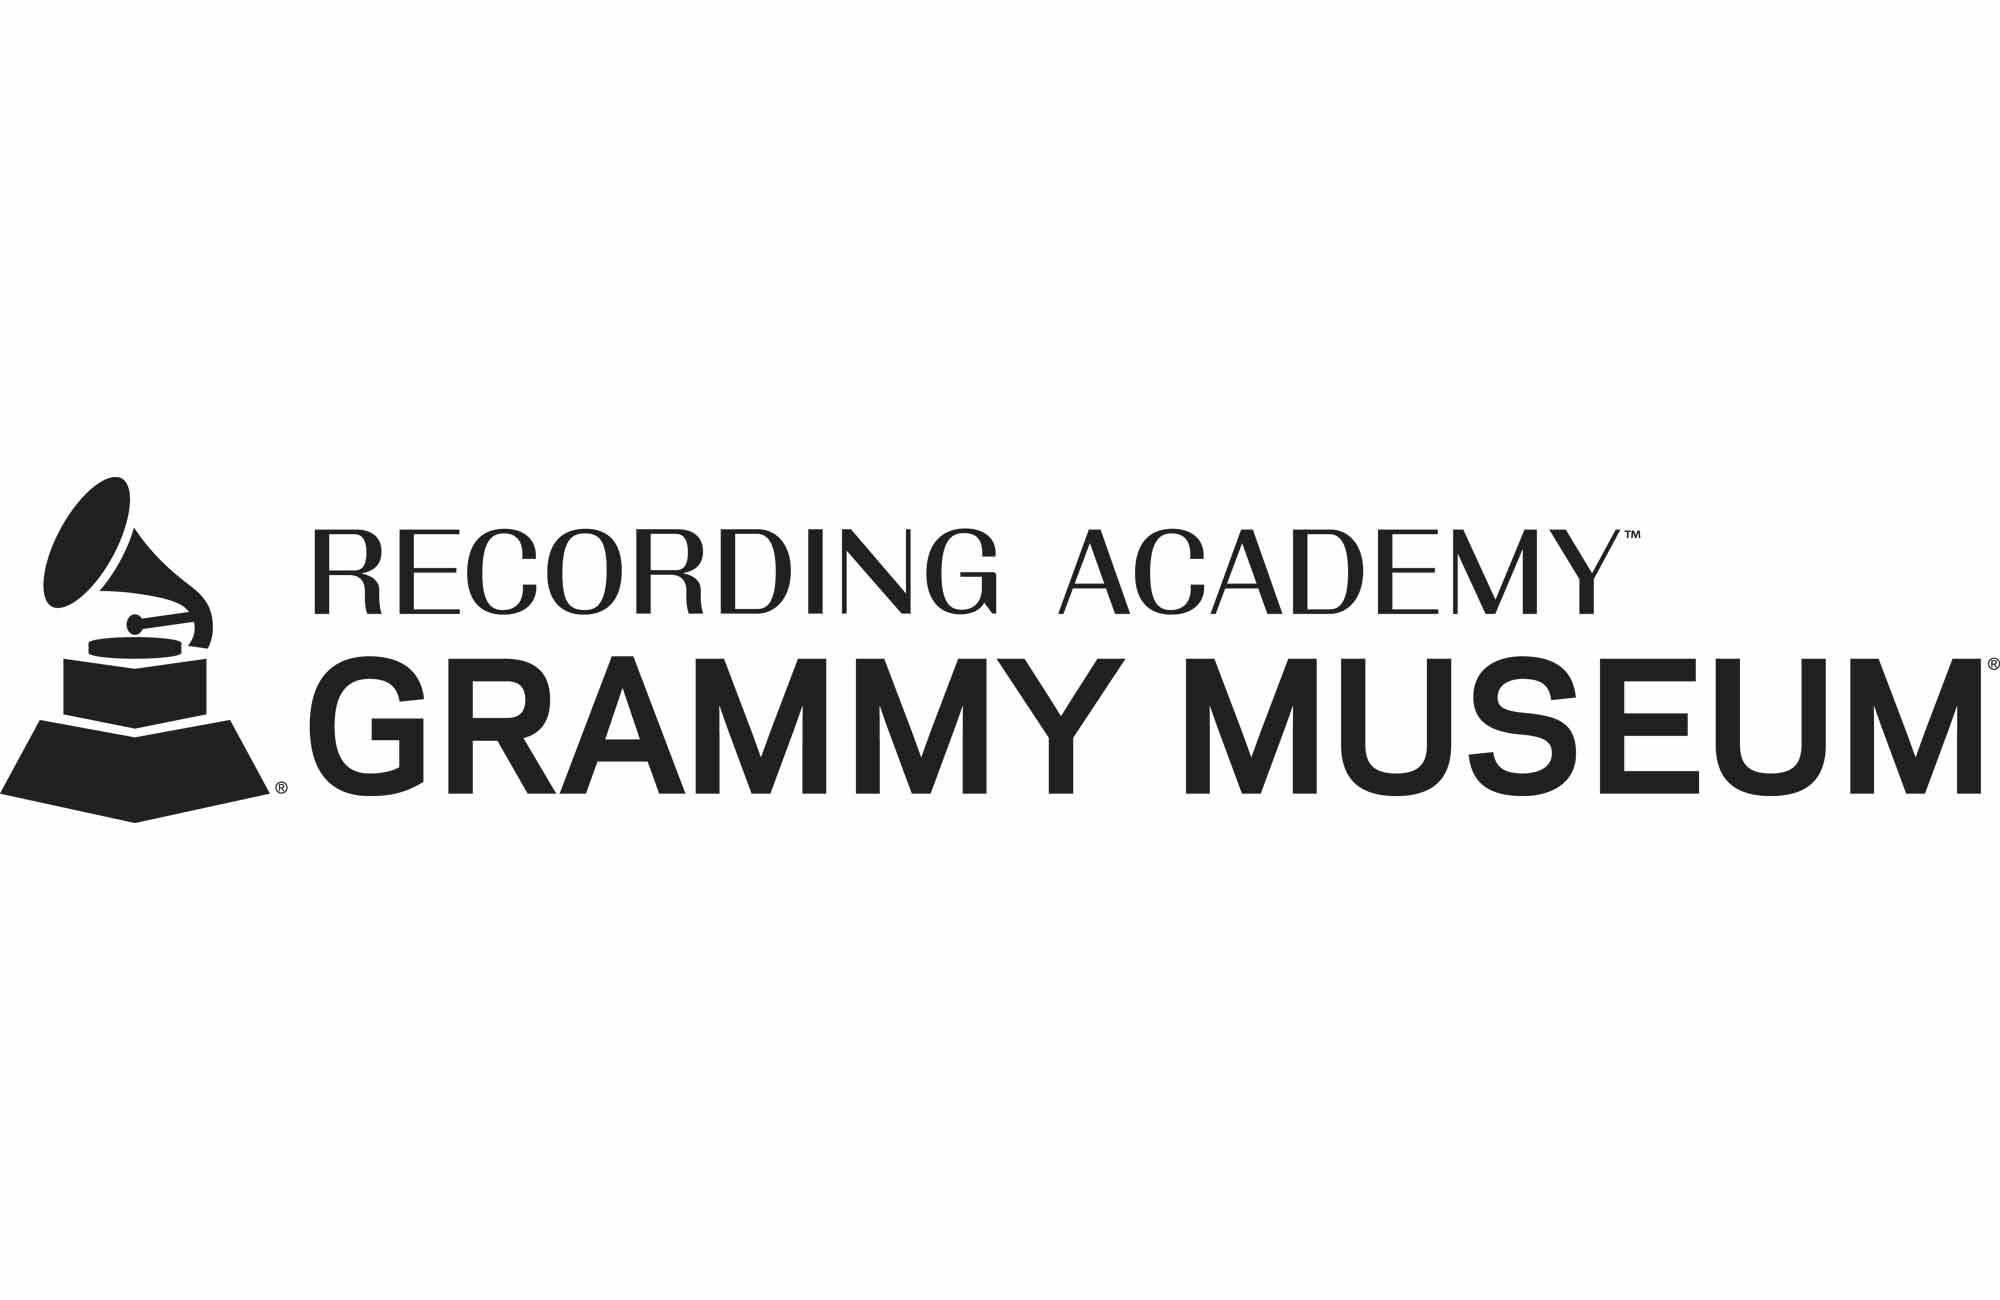 GRAMMY Museum with Quentin Tarantino & Friends